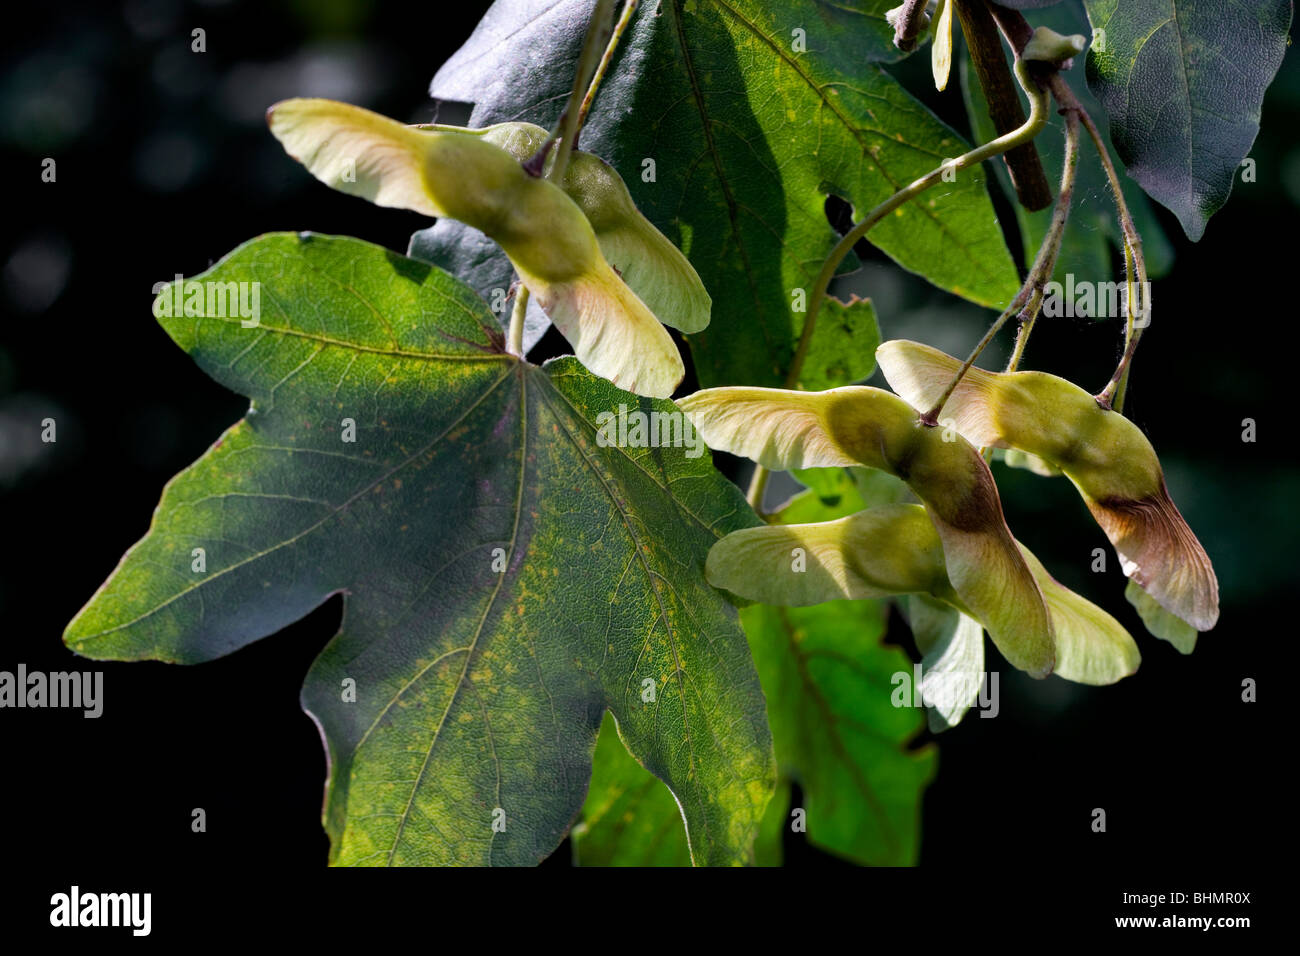 Field Maple / Hedge Maple (Acer campestre) with fruit, Belgium - Stock Image